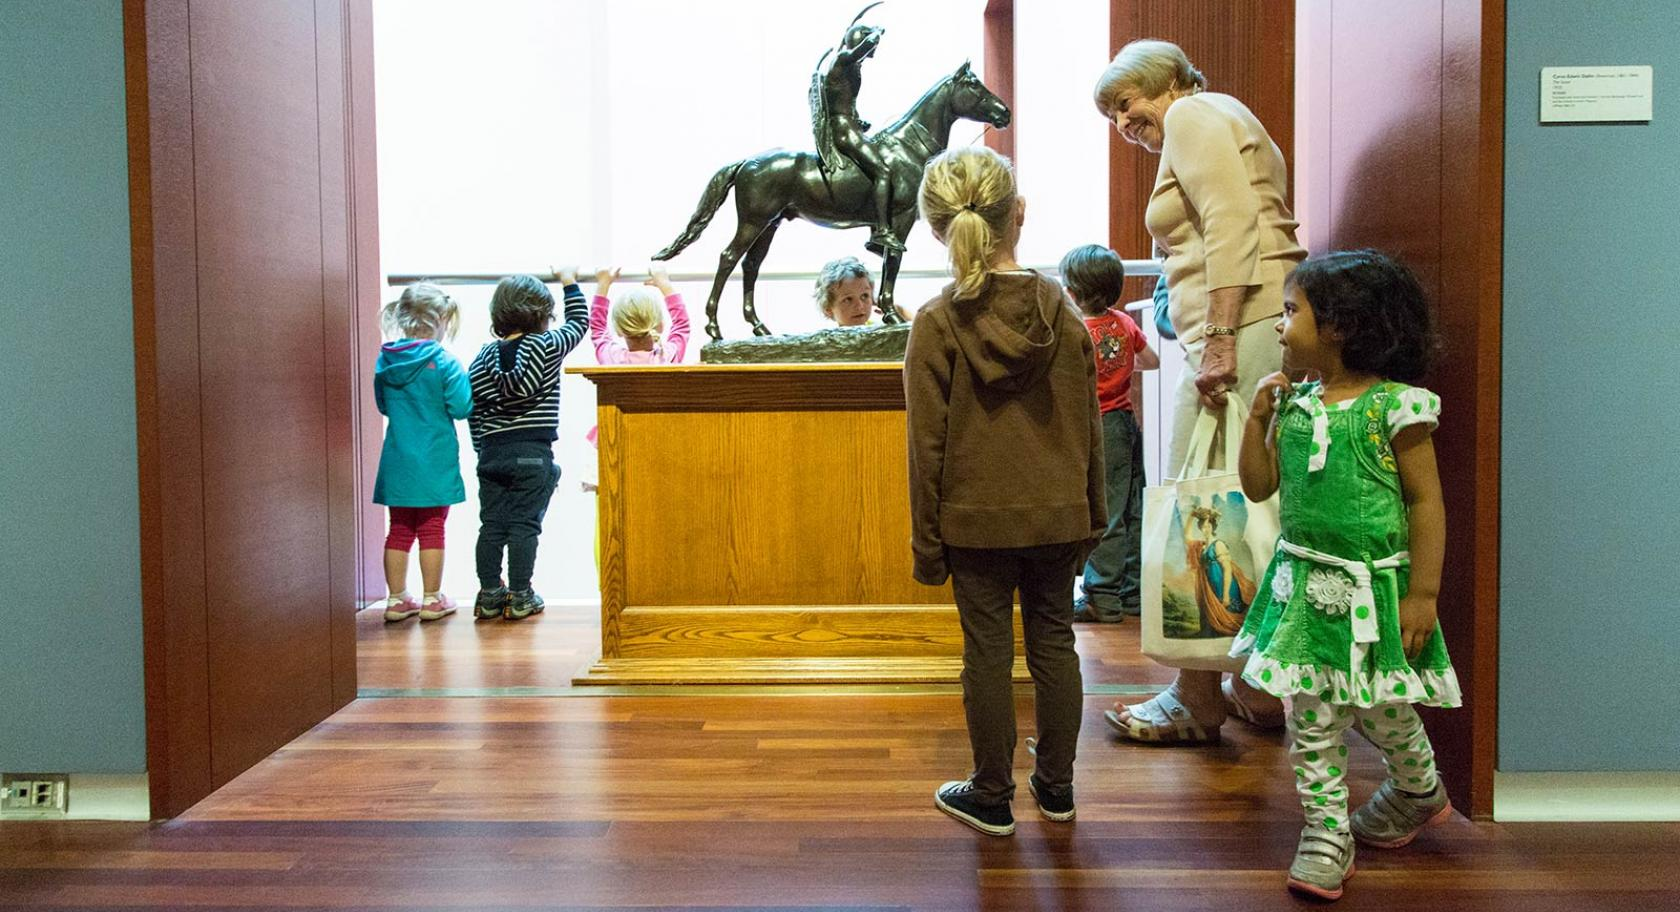 A UMFA docent educates young students about the collection.